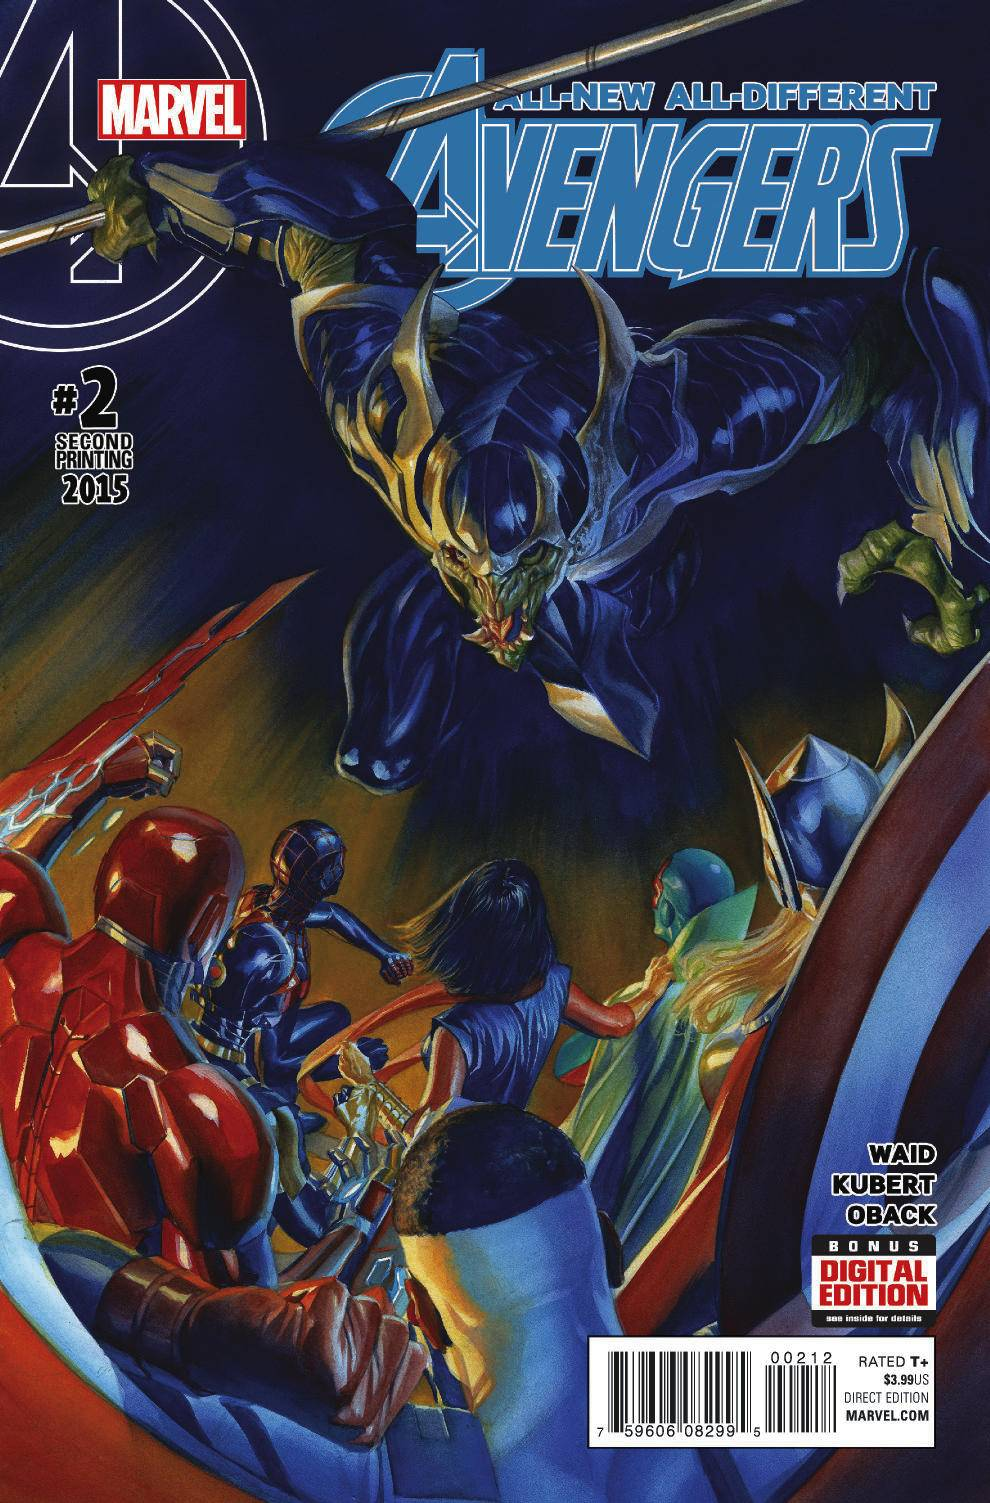 01/13/2016 ALL NEW ALL DIFFERENT AVENGERS #2 ALEX ROSS 2ND PTG VARIANT